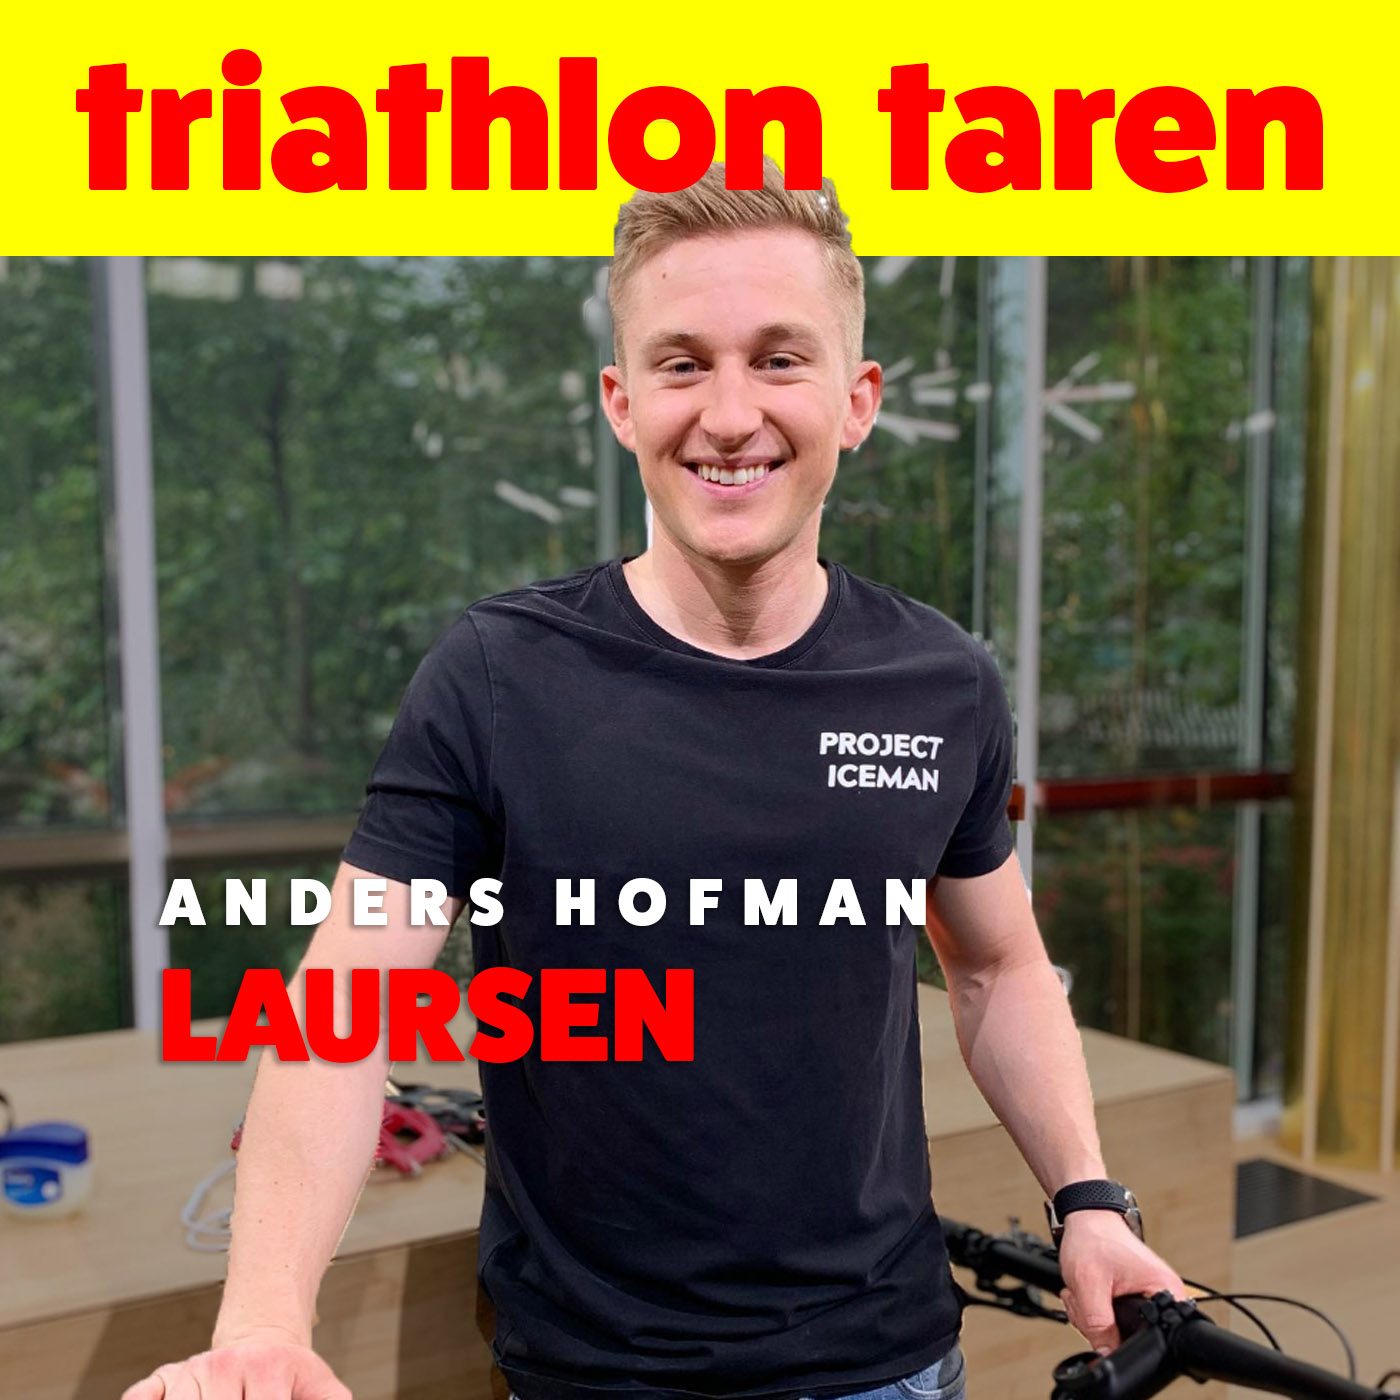 "Doing an Ironman on Antarctica with Anders ""The Iceman"" Hofman Laursen"